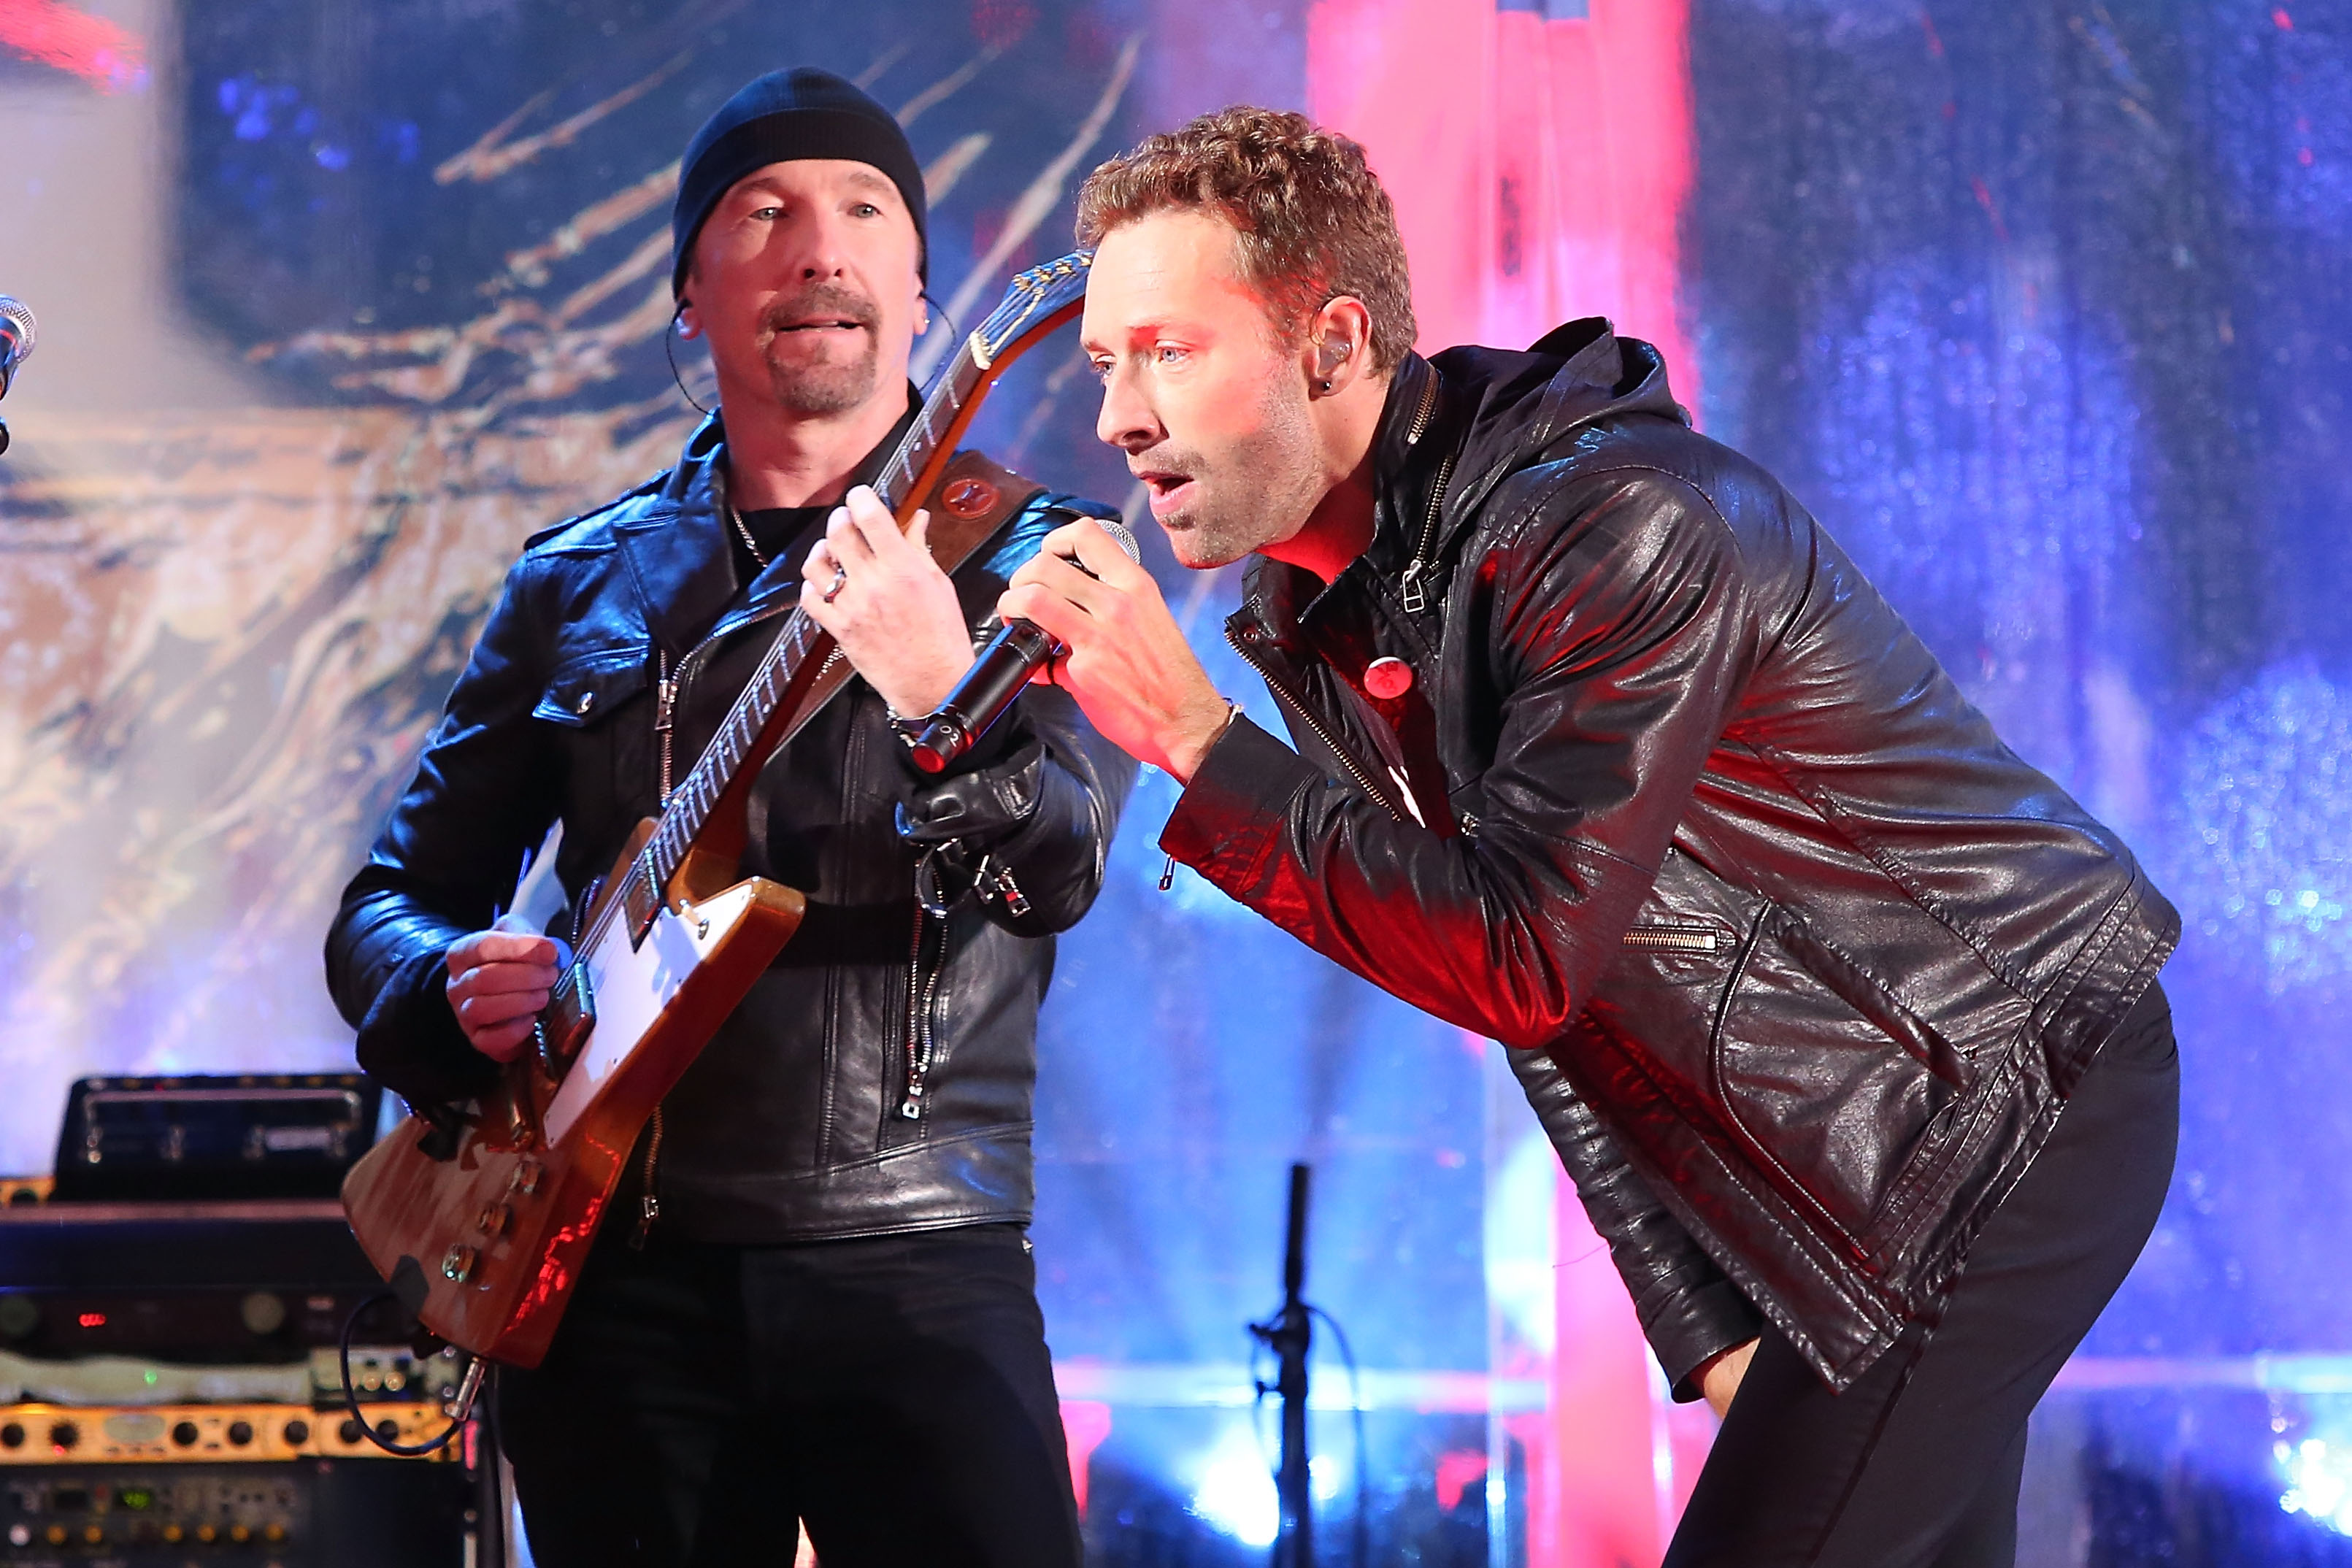 NEW YORK, NY - DECEMBER 01:  The Edge and Chris Martin of Coldplay perform as 'U2 - 1' in a surprise concert by (RED) to mark